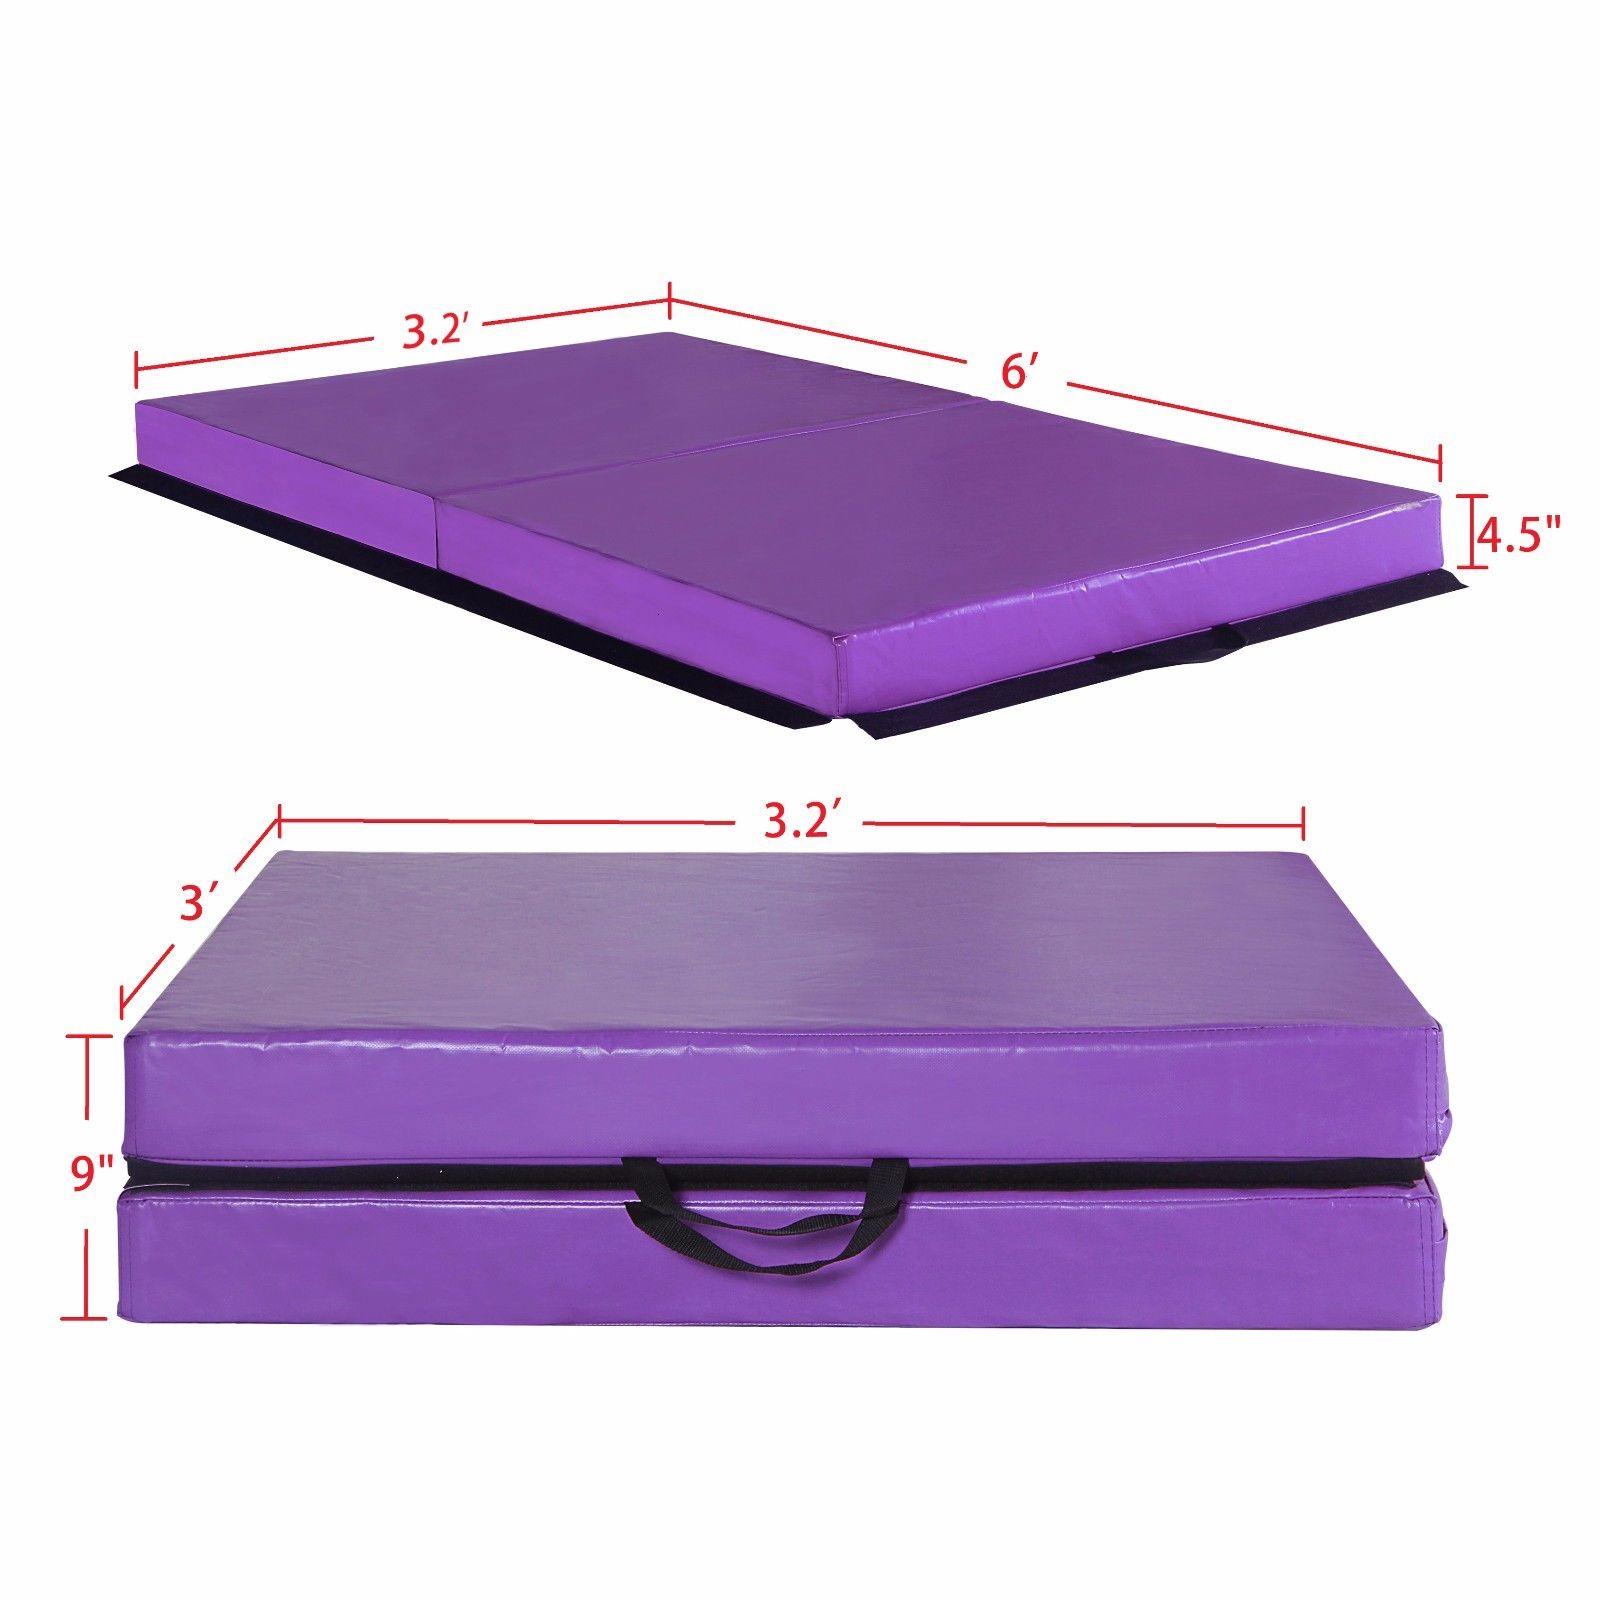 for mats x flooring foam p gym ft and greatmats mat oz vinyl home folding in cover smooth blue gymnastics